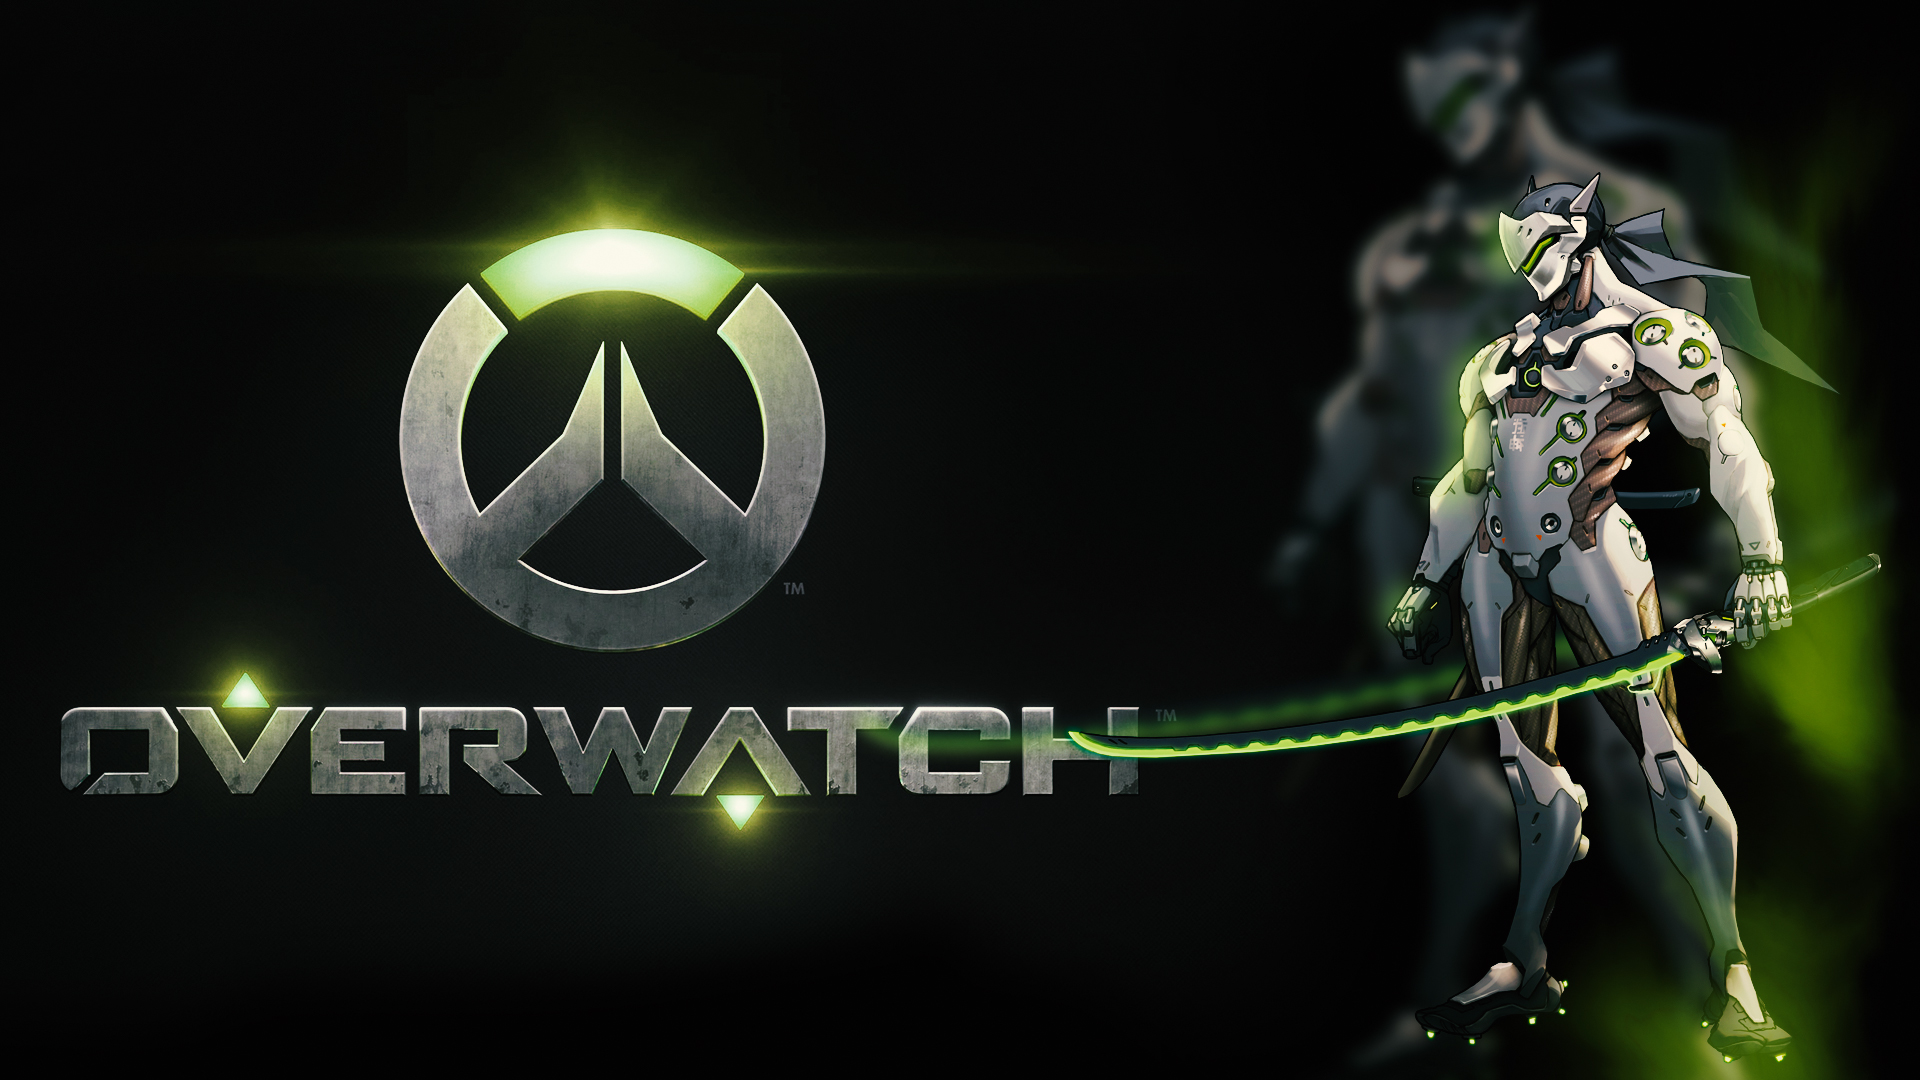 Genji Overwatch Wallpaper 26 images on Genchi.info